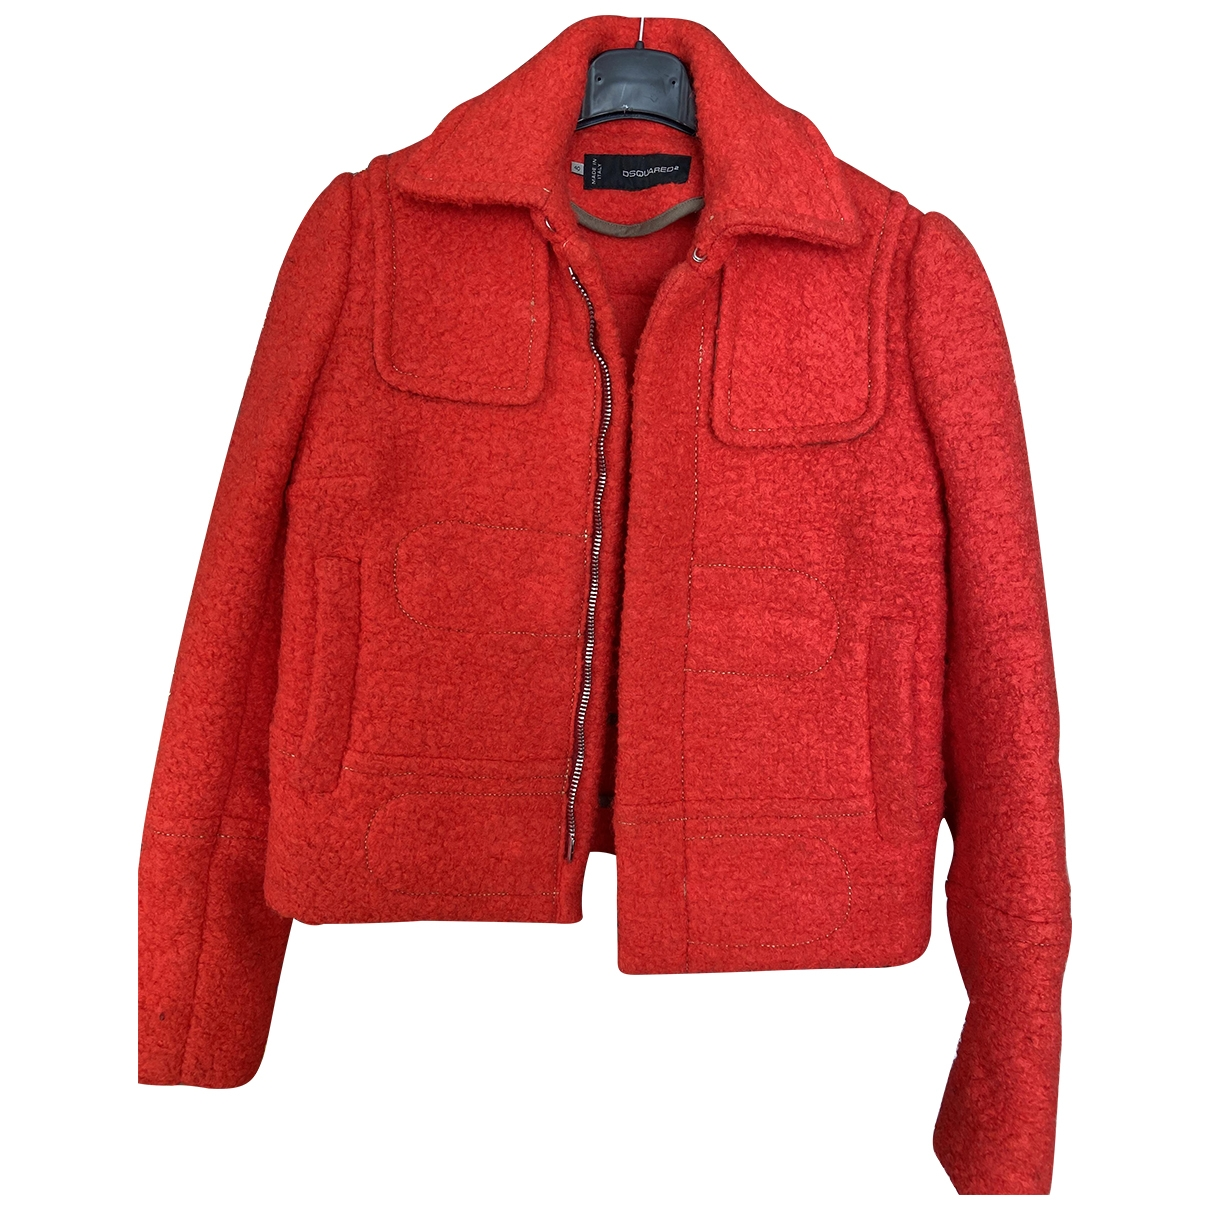 Dsquared2 \N Red Wool jacket for Women 40 IT